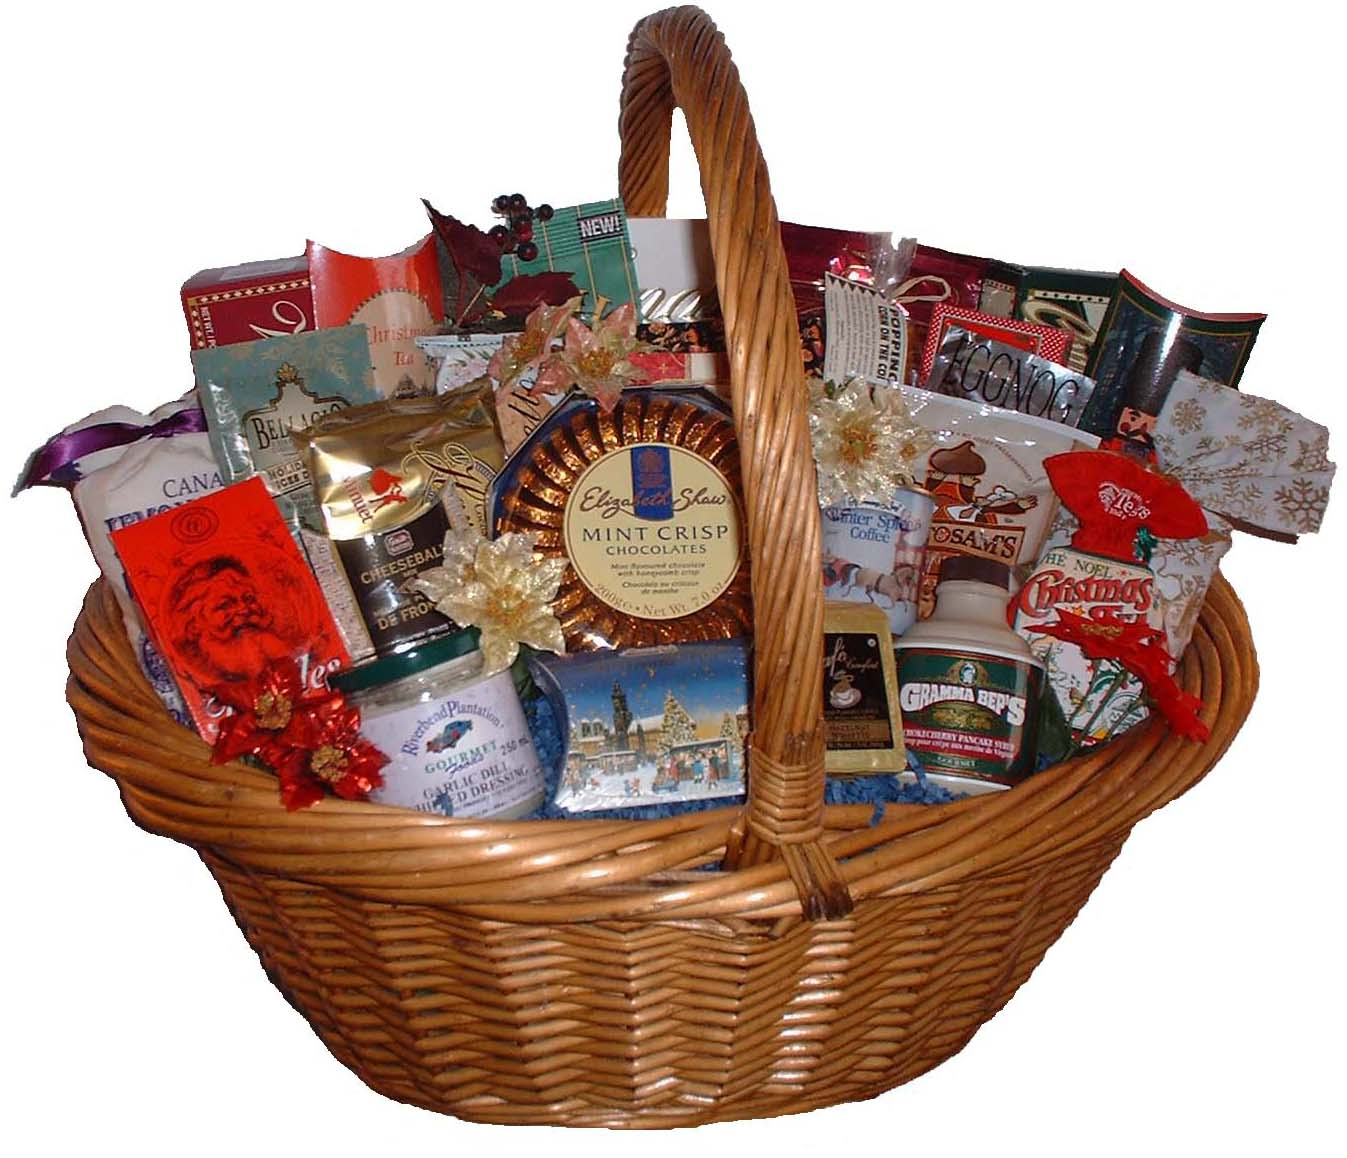 Gift Baskets Early Bird Promo ** Save up to 20% on select Holiday Gift Baskets, also ***Save 5% on orders $750 or more if ordered by December 6th.